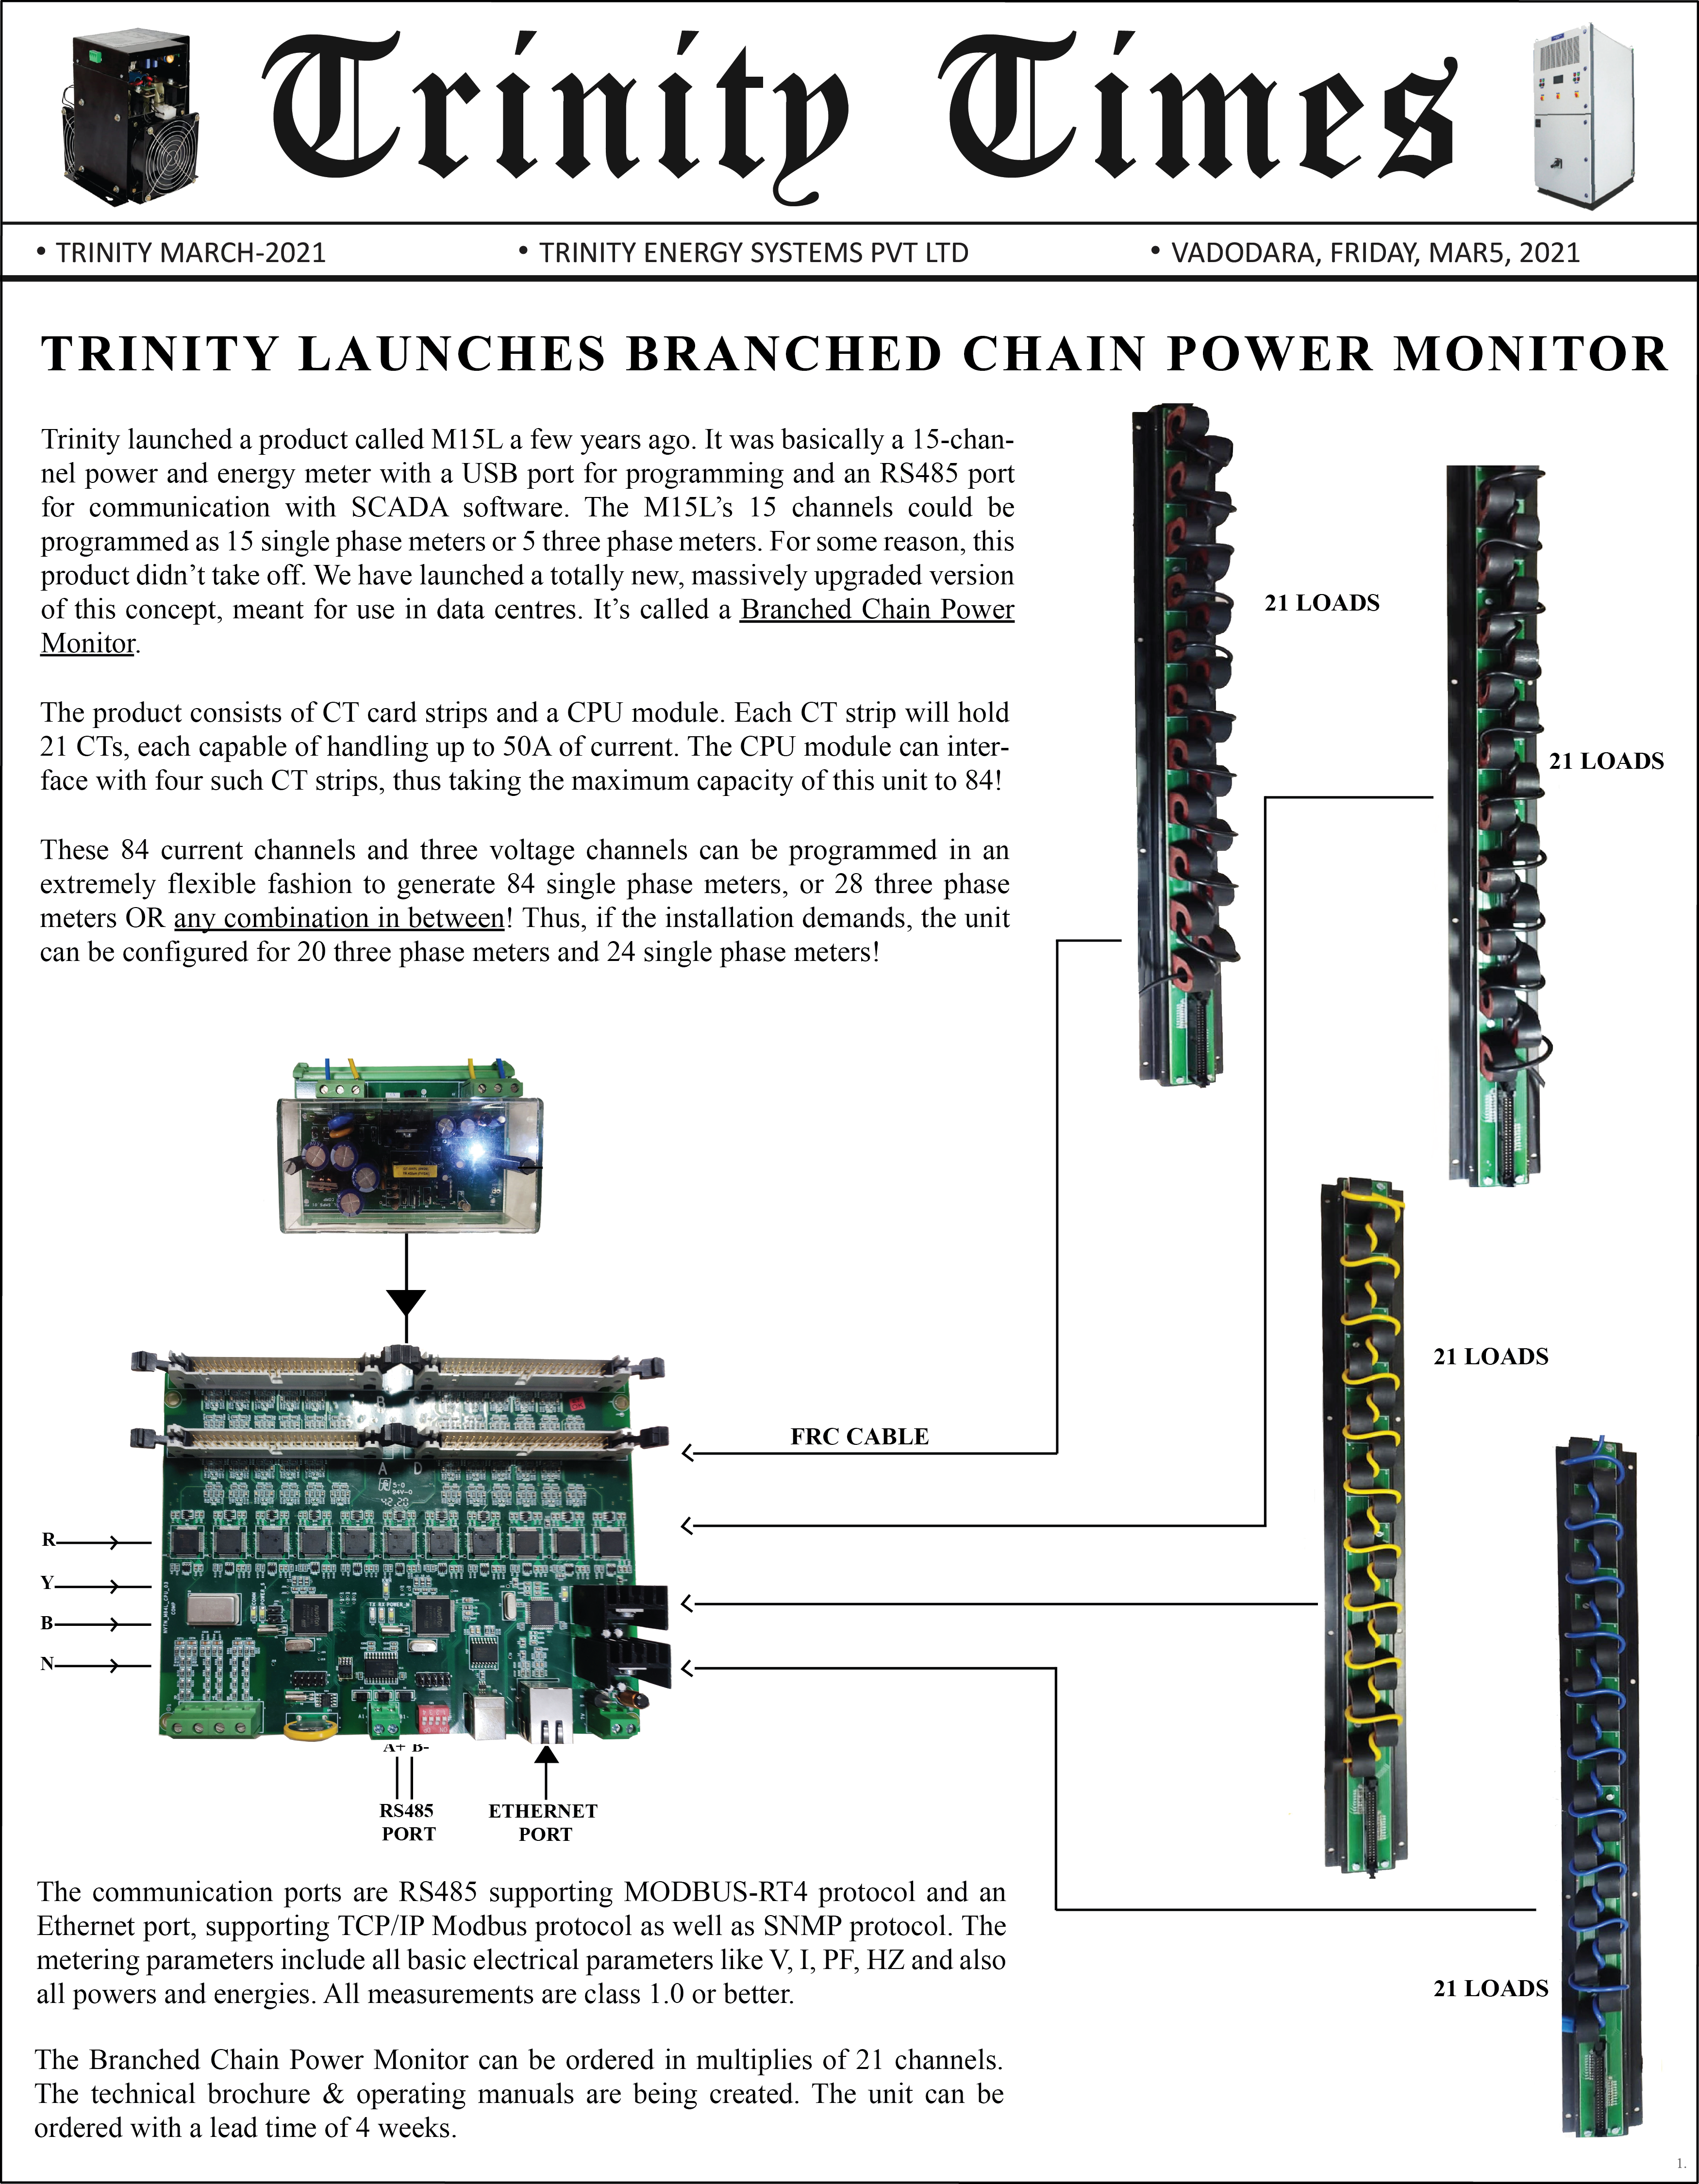 TRINITY LAUNCHES BRANCHED CHAIN POWER MONITOR